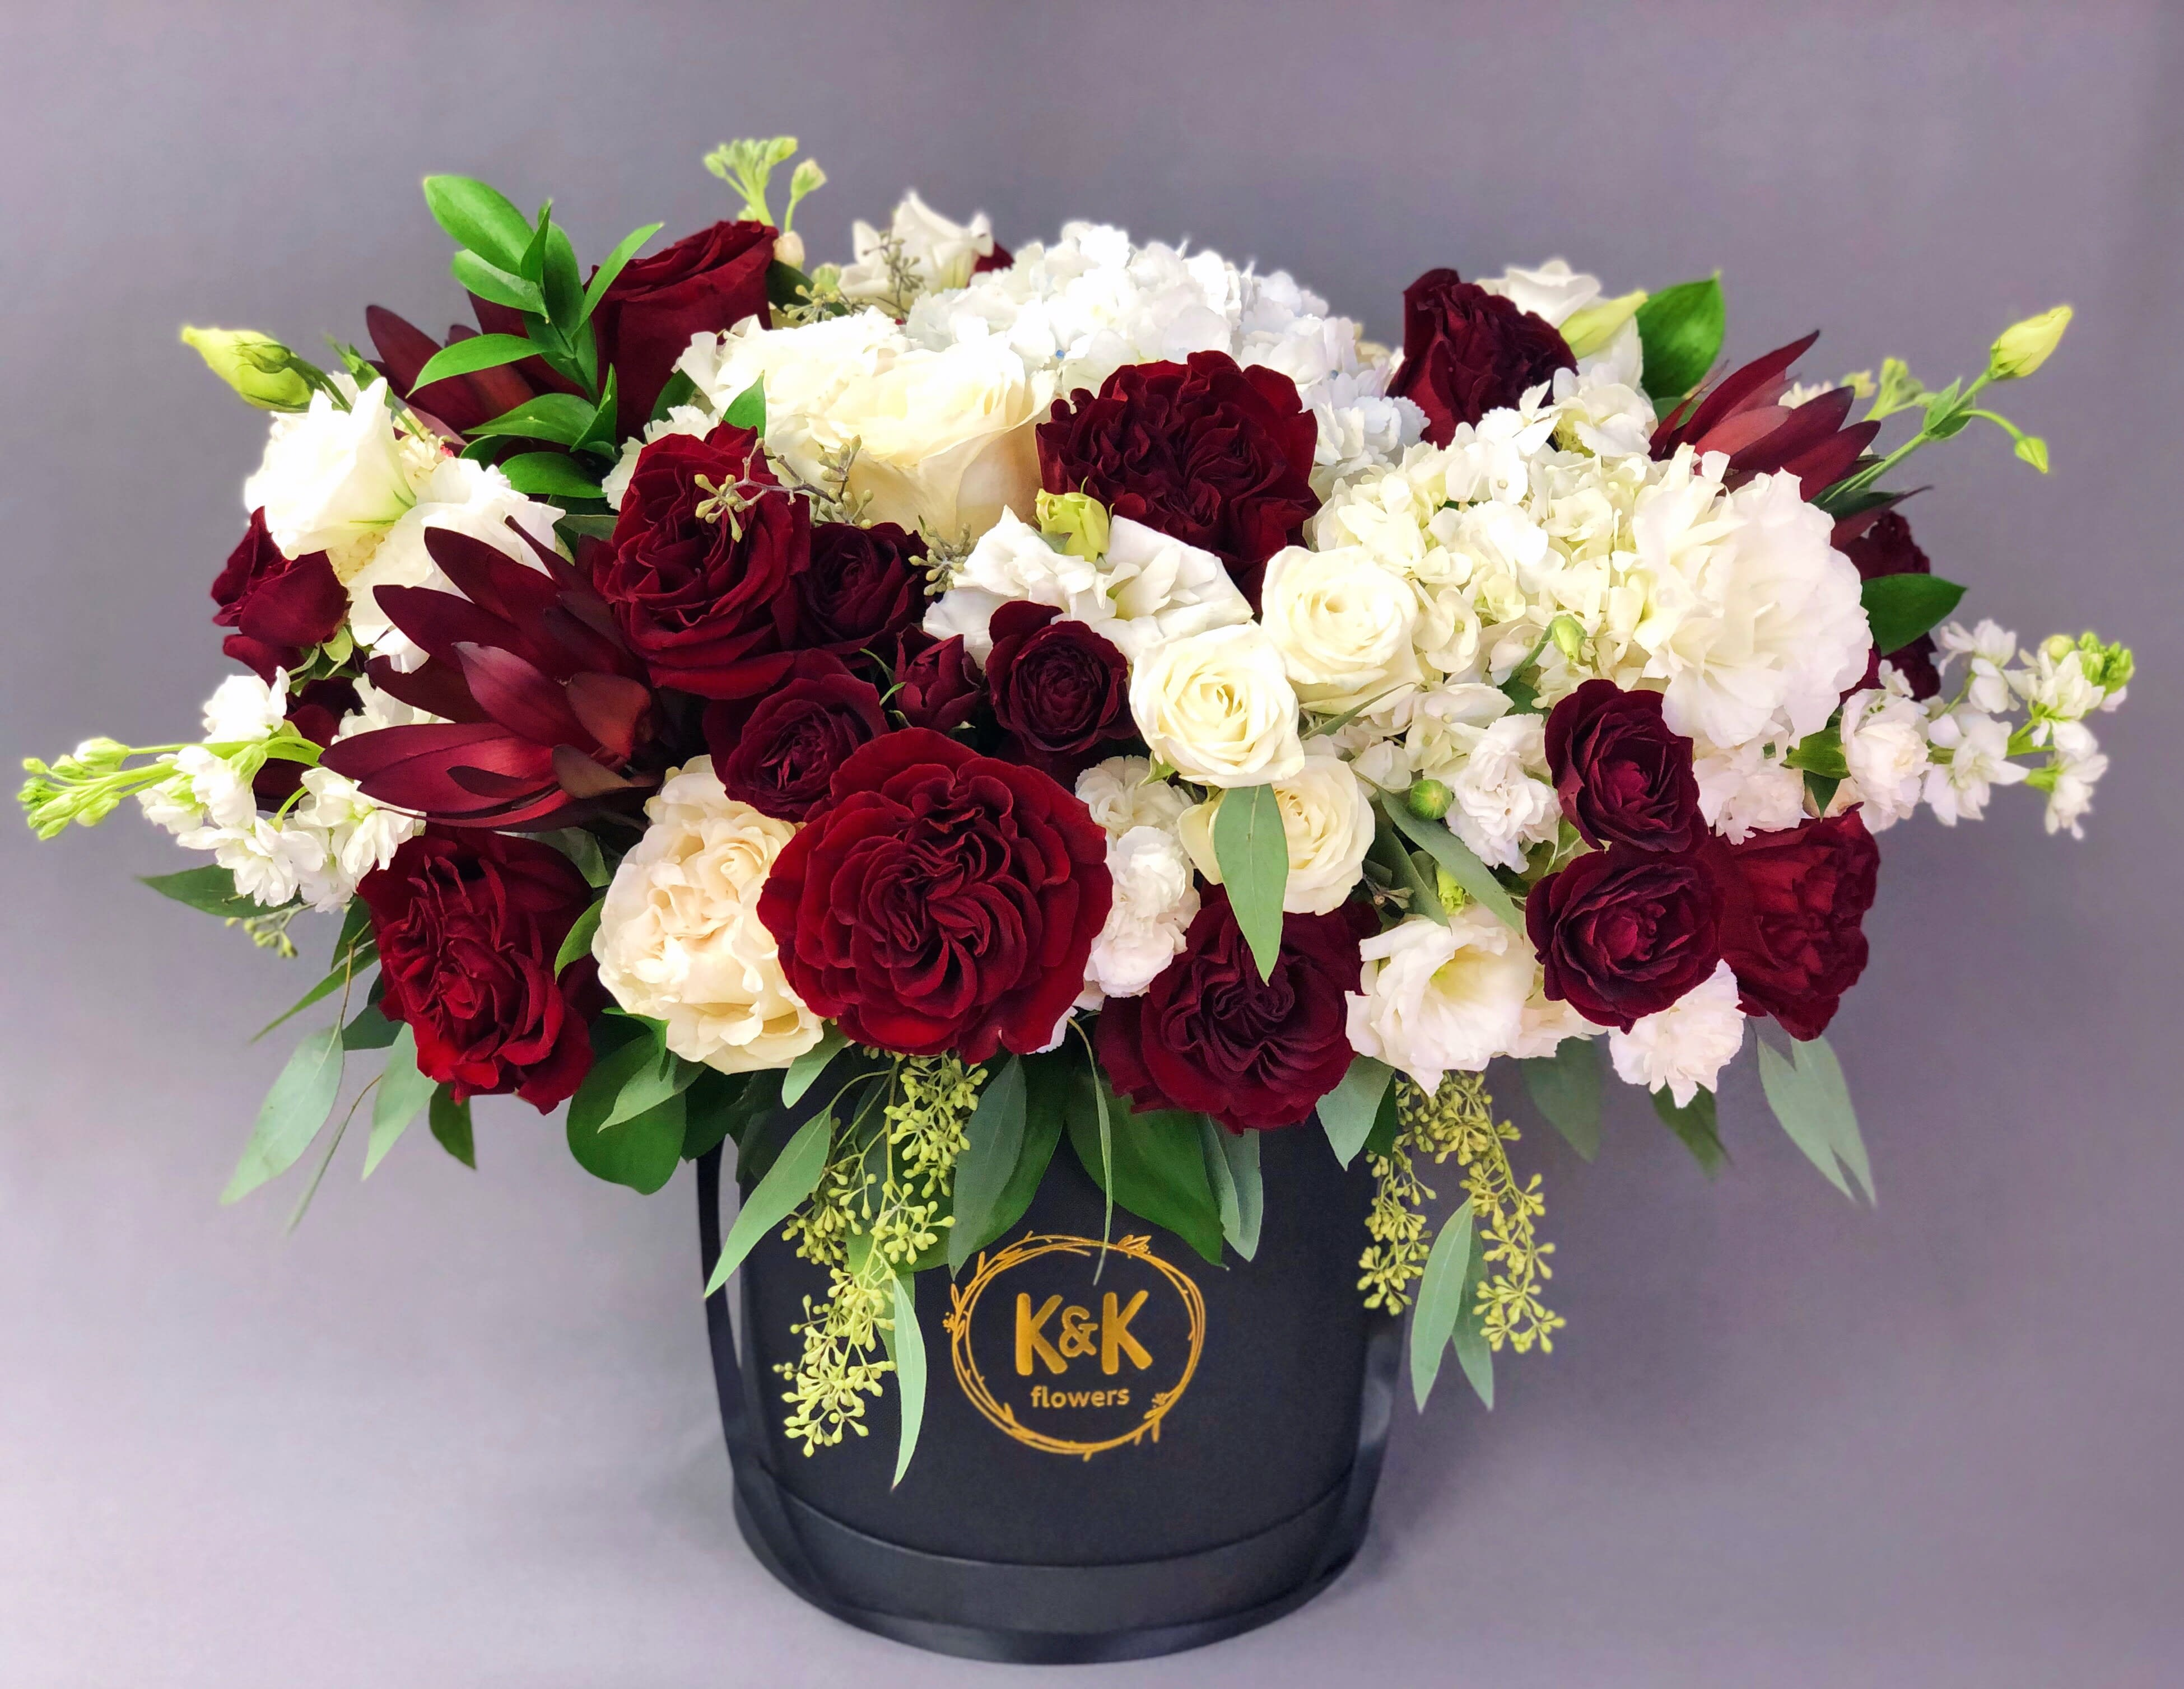 105 Xxl Hat Box Arrangement Red And White In A Black Box By K K Flowers